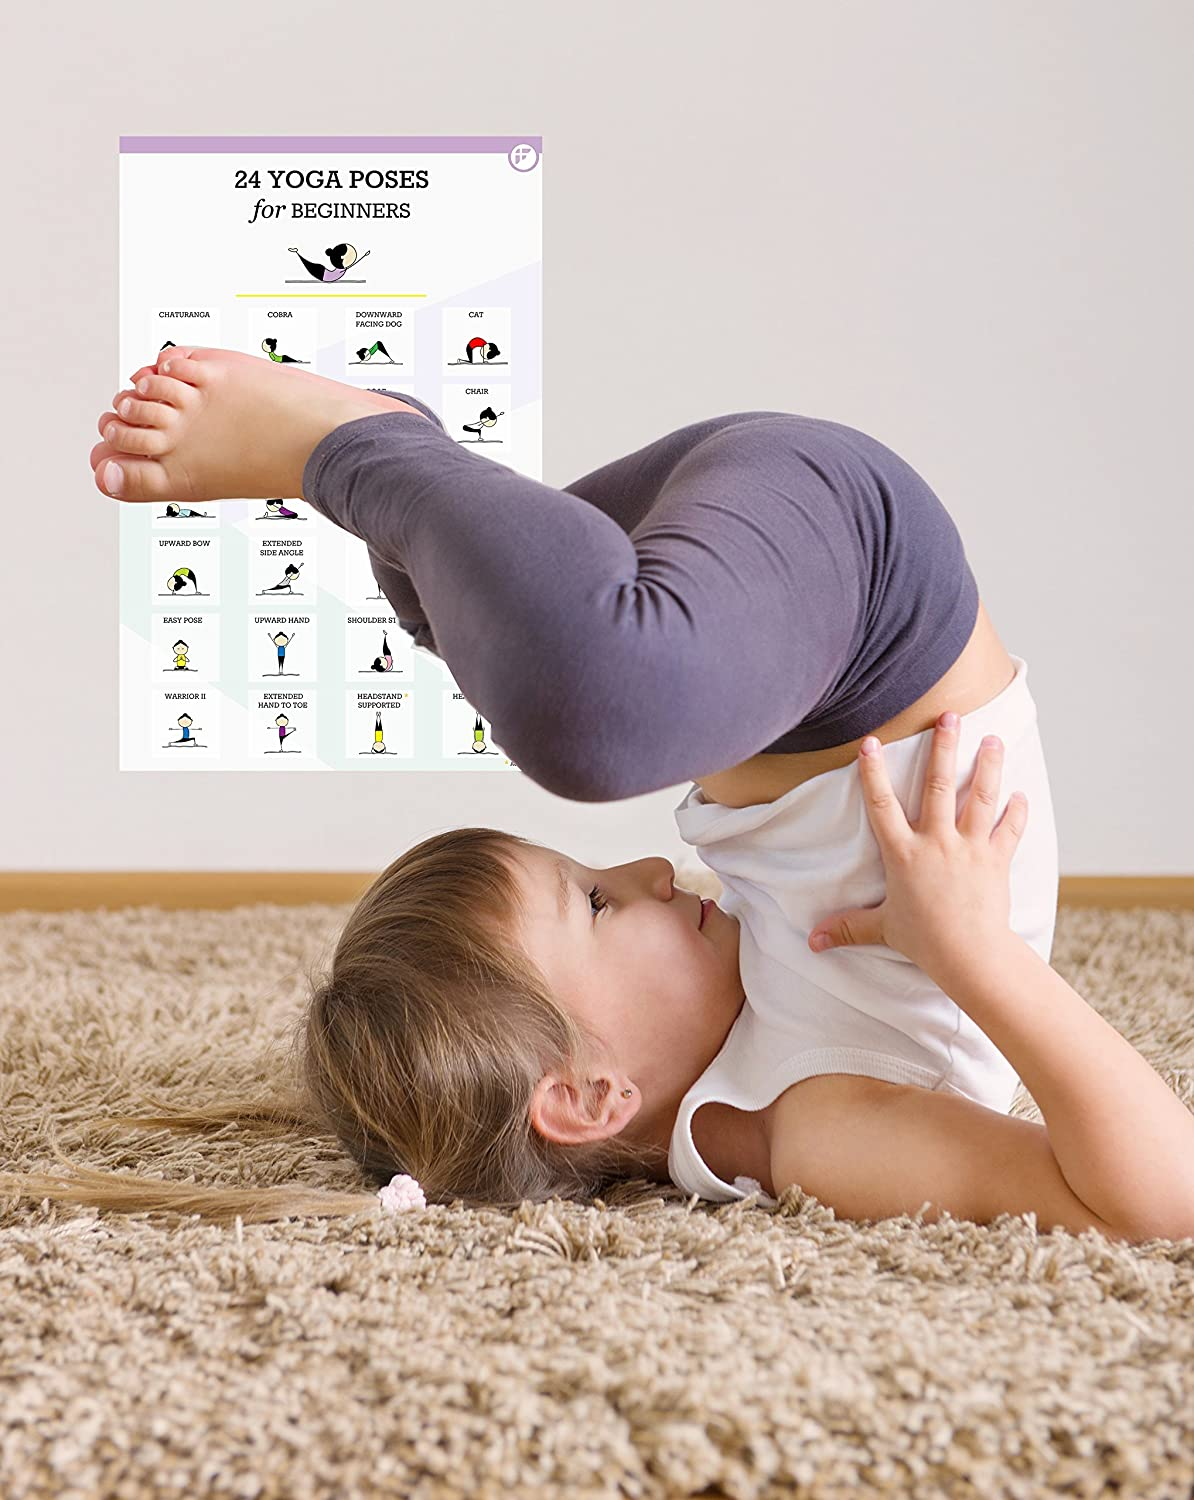 Fitwirr 48 Yoga Poses for Beginners - Yoga Kids (Laminated Poster) - Kids  Yoga Poses - Yoga Children - Yoga for Kids -Yoga Wall Arts - Yoga Poster